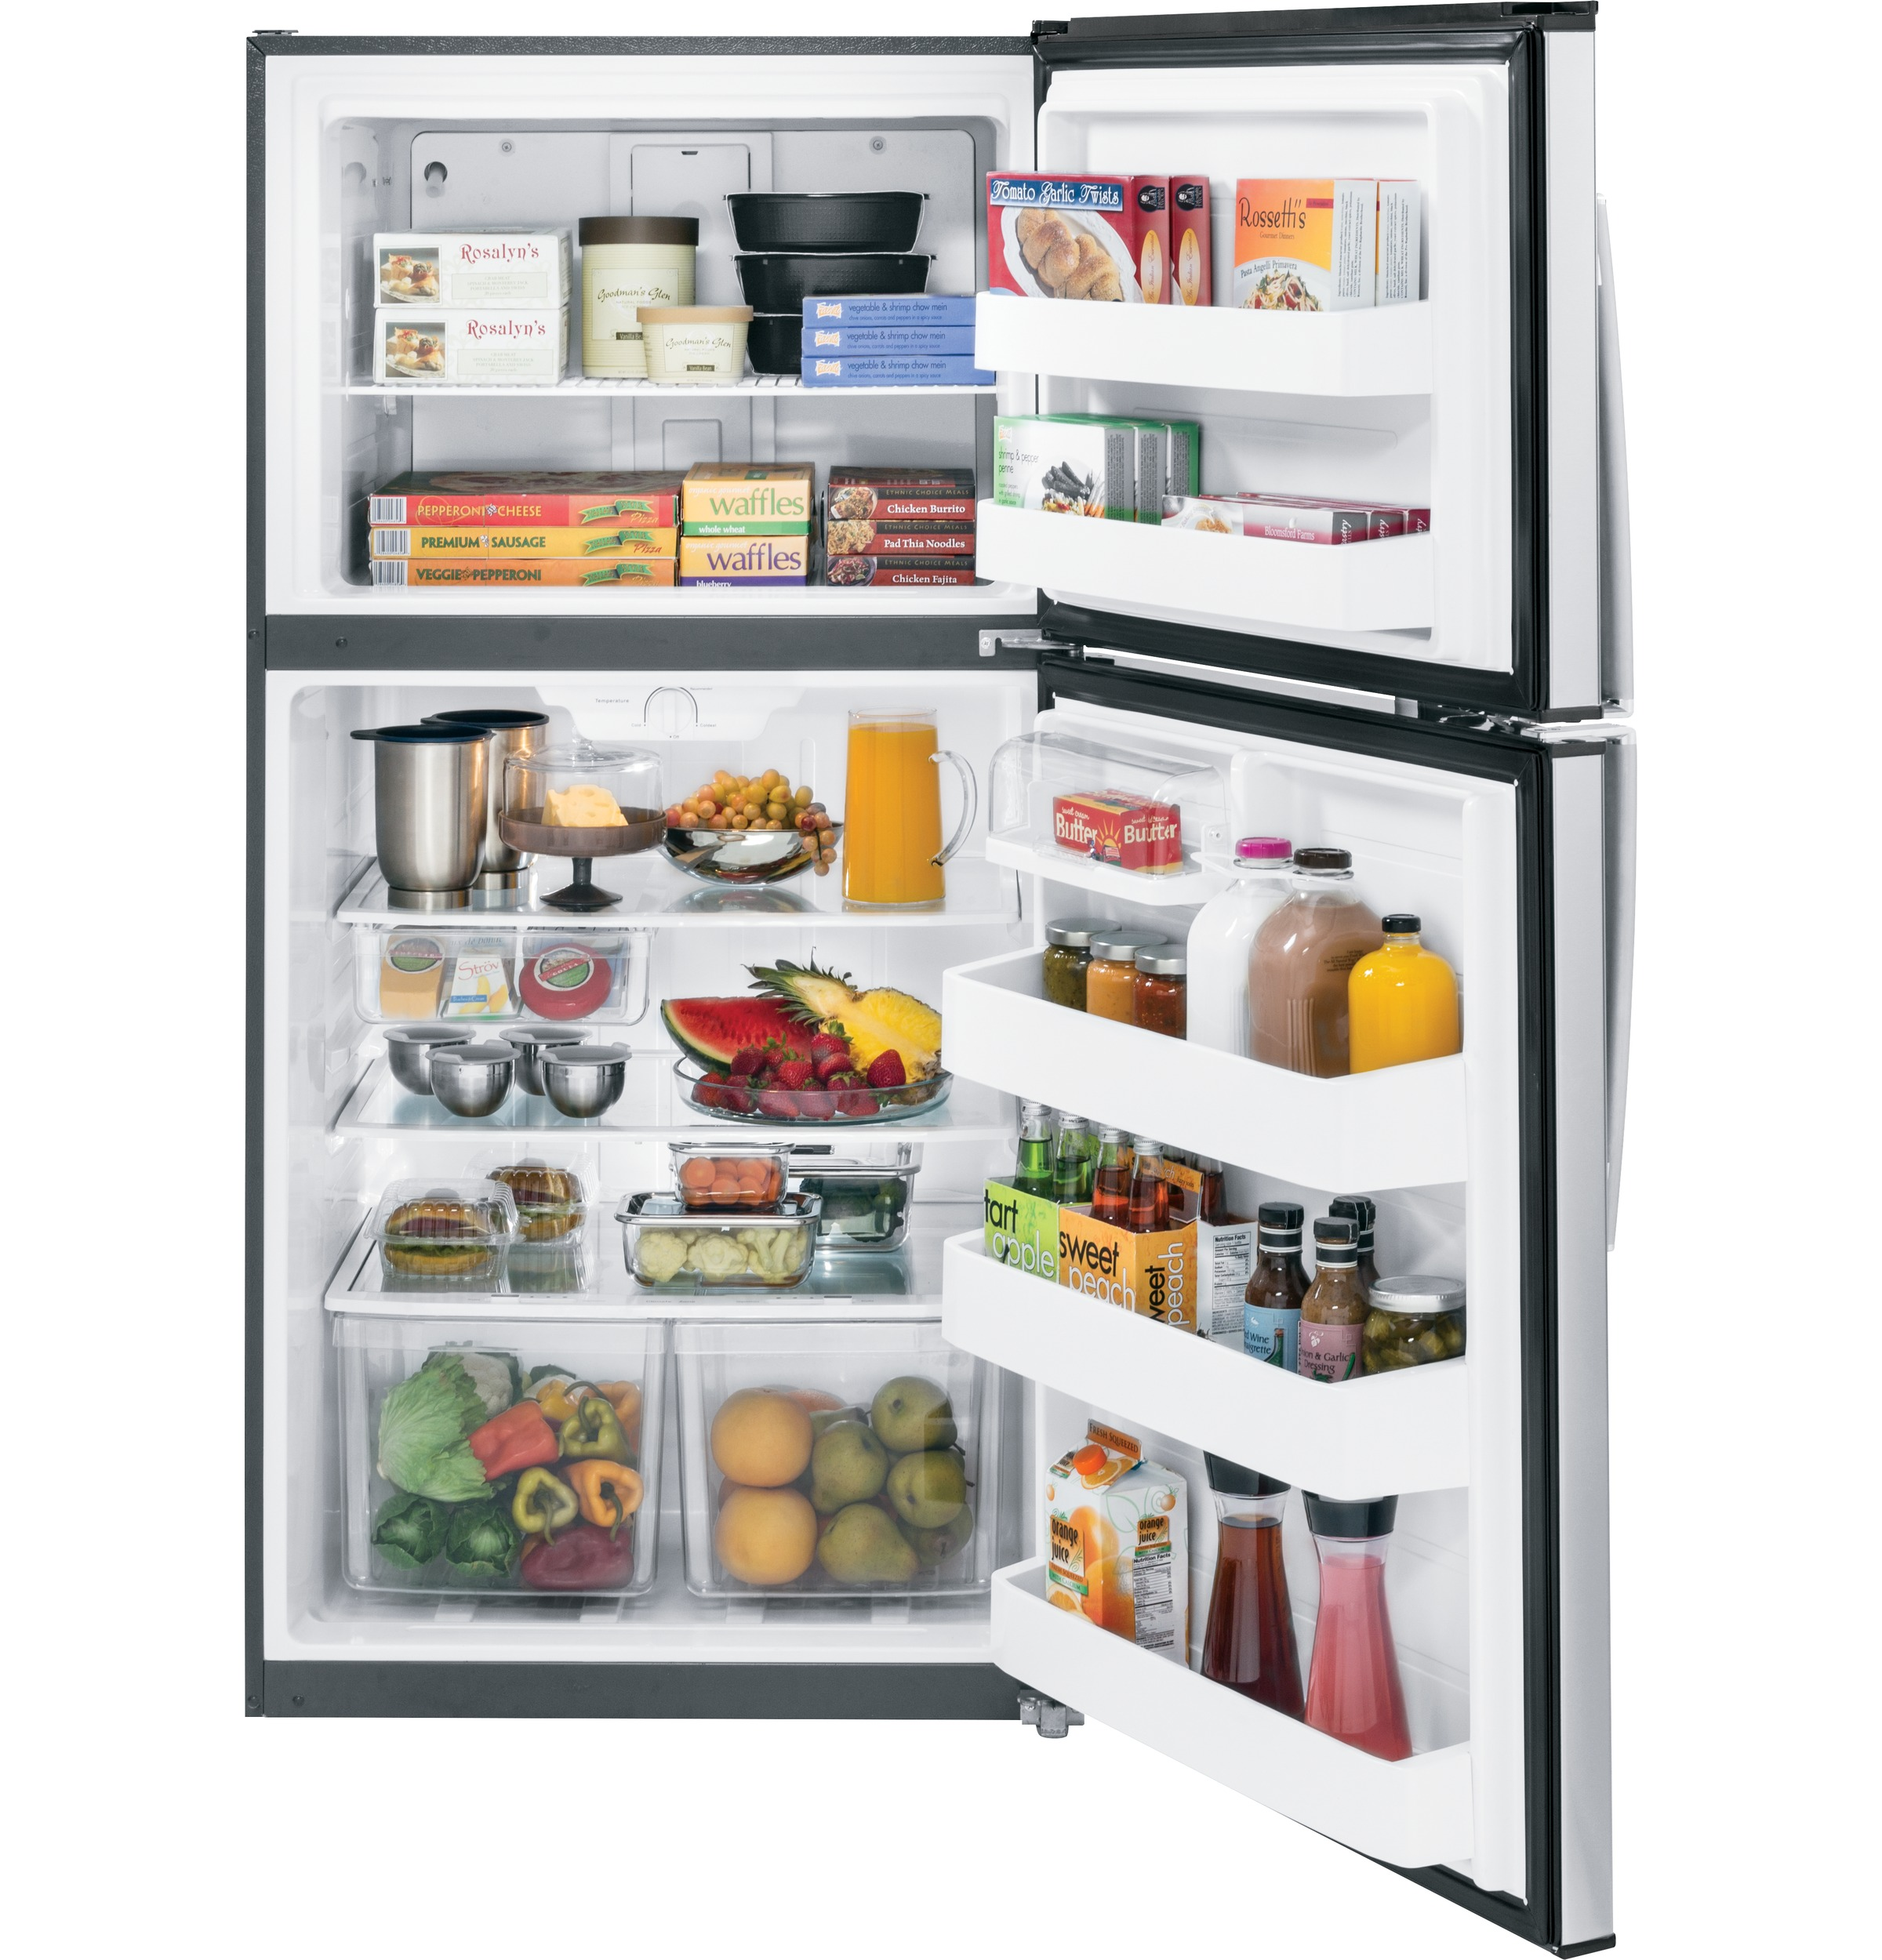 GE Appliances 21.2 cu. ft. Top-Freezer Refrigerator - Stainless Steel